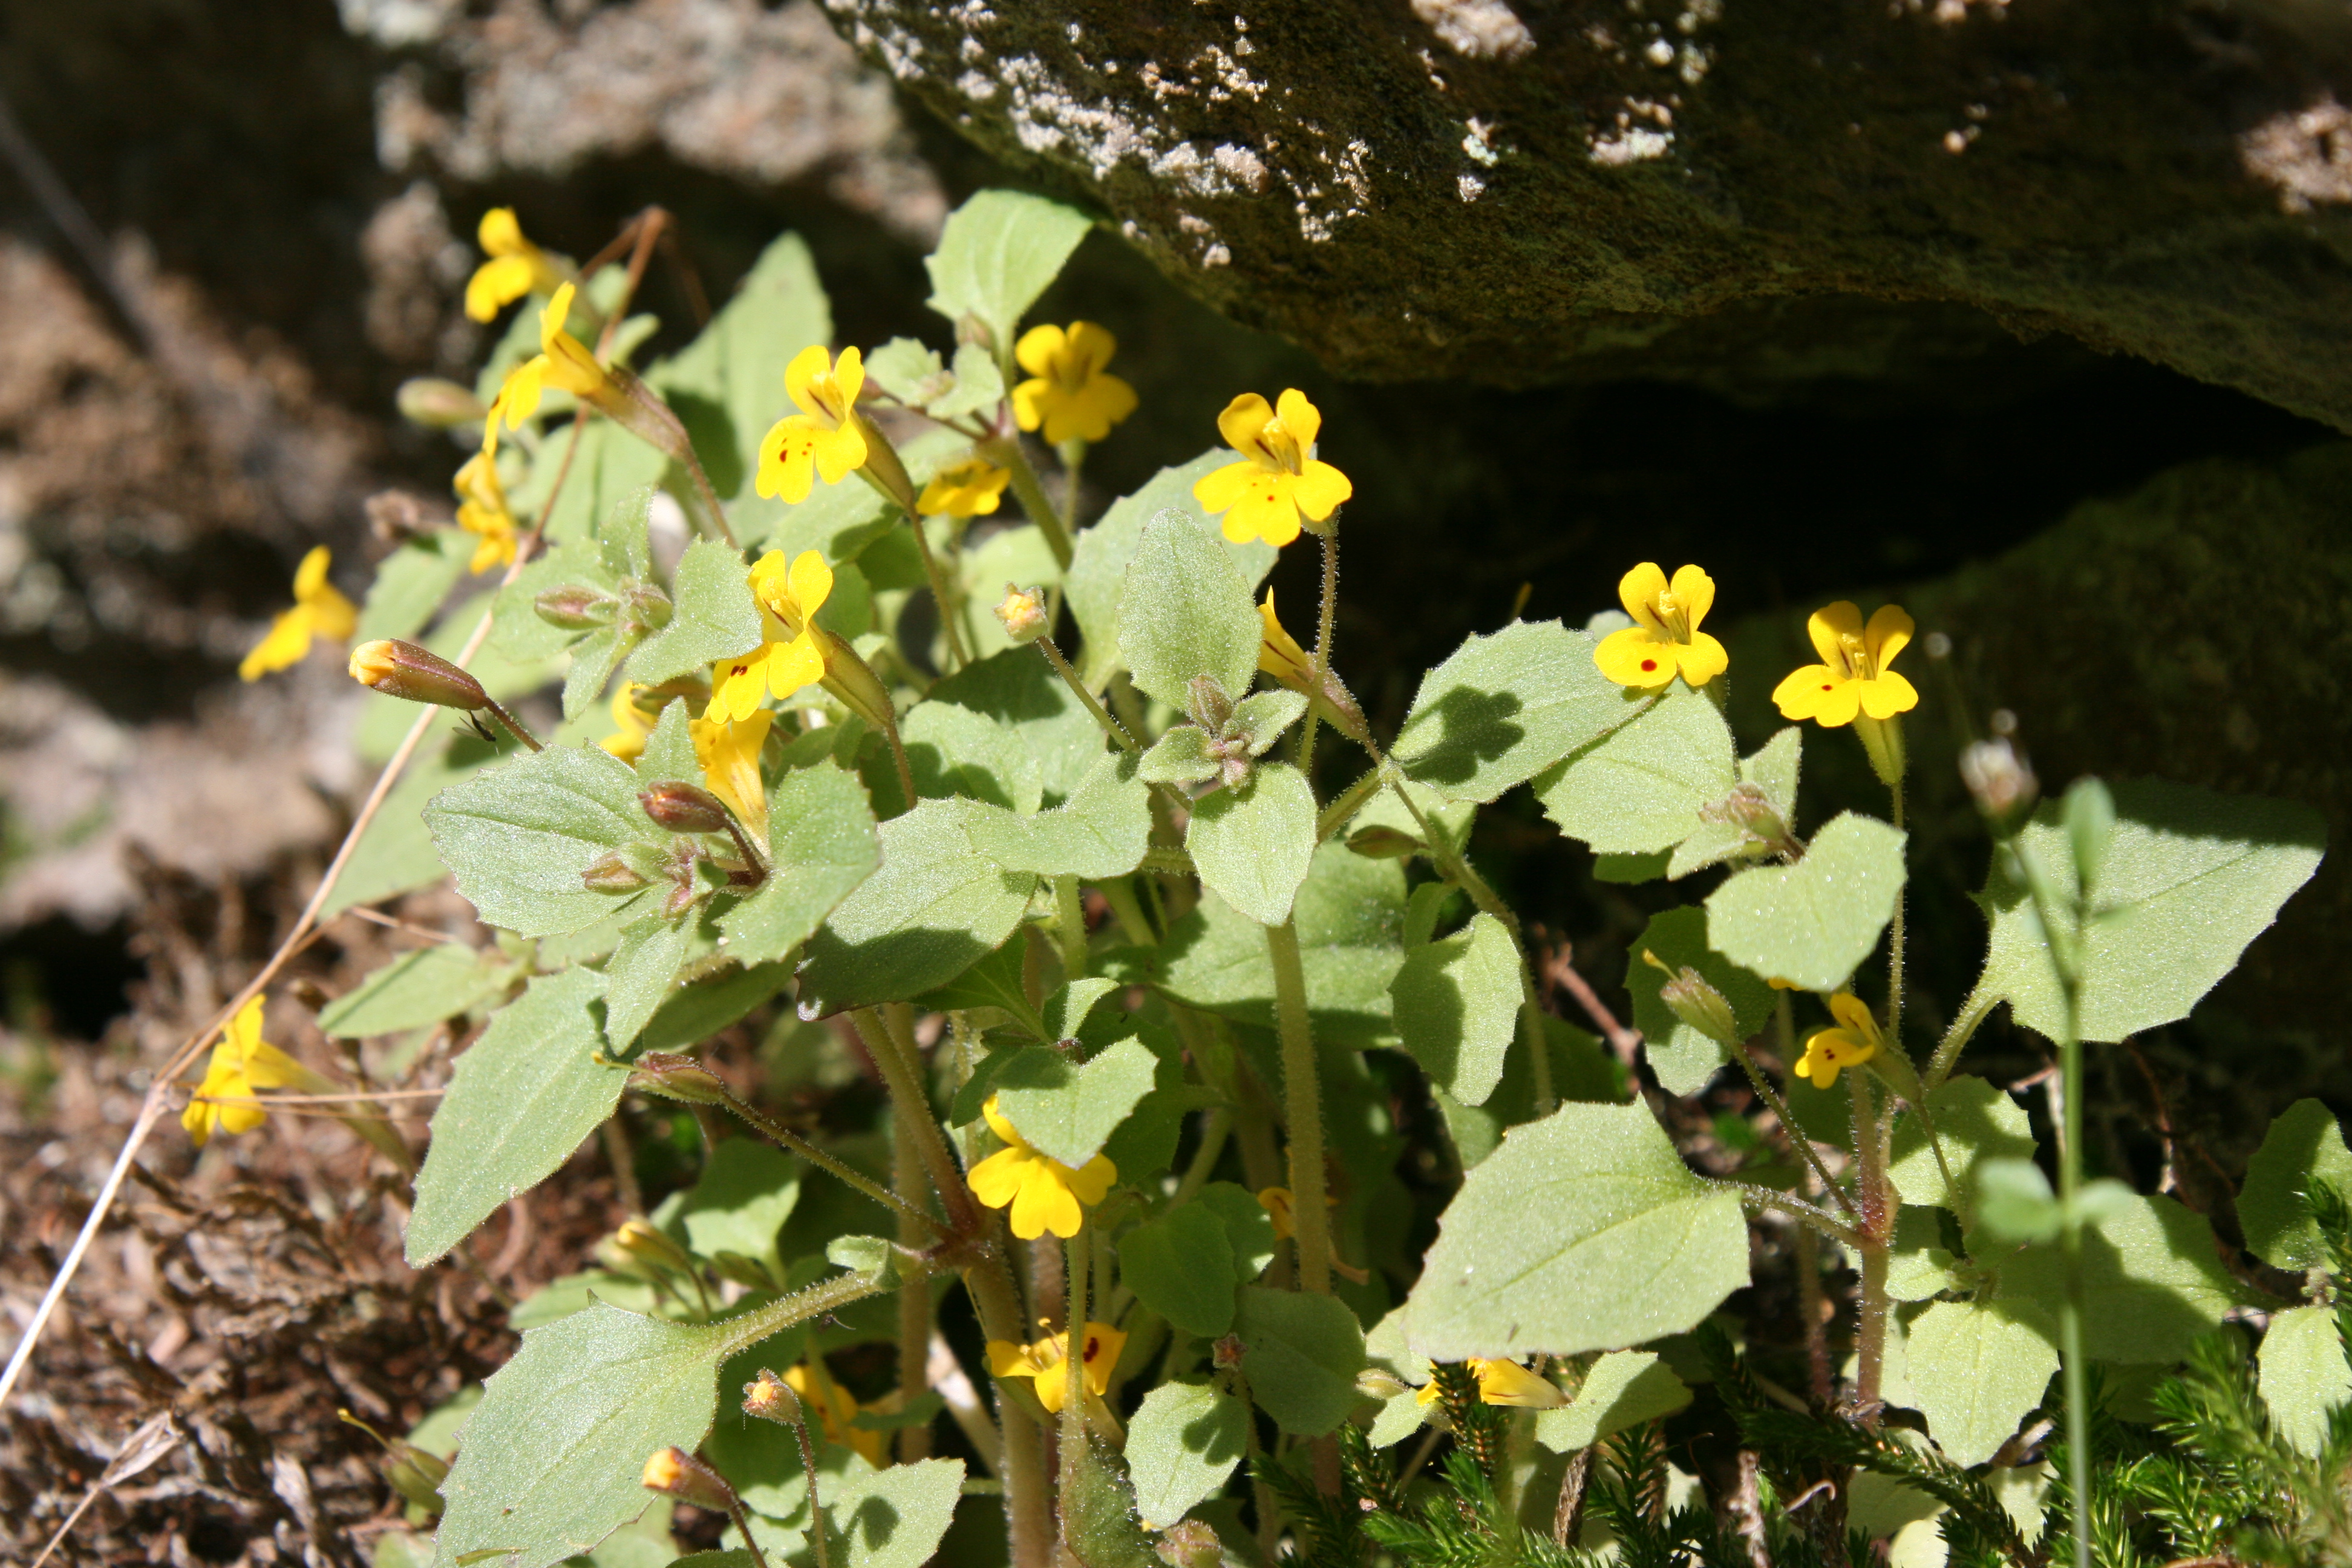 Mimulus Moore Hill 4-6-2015 2-57-07 AM.JPG